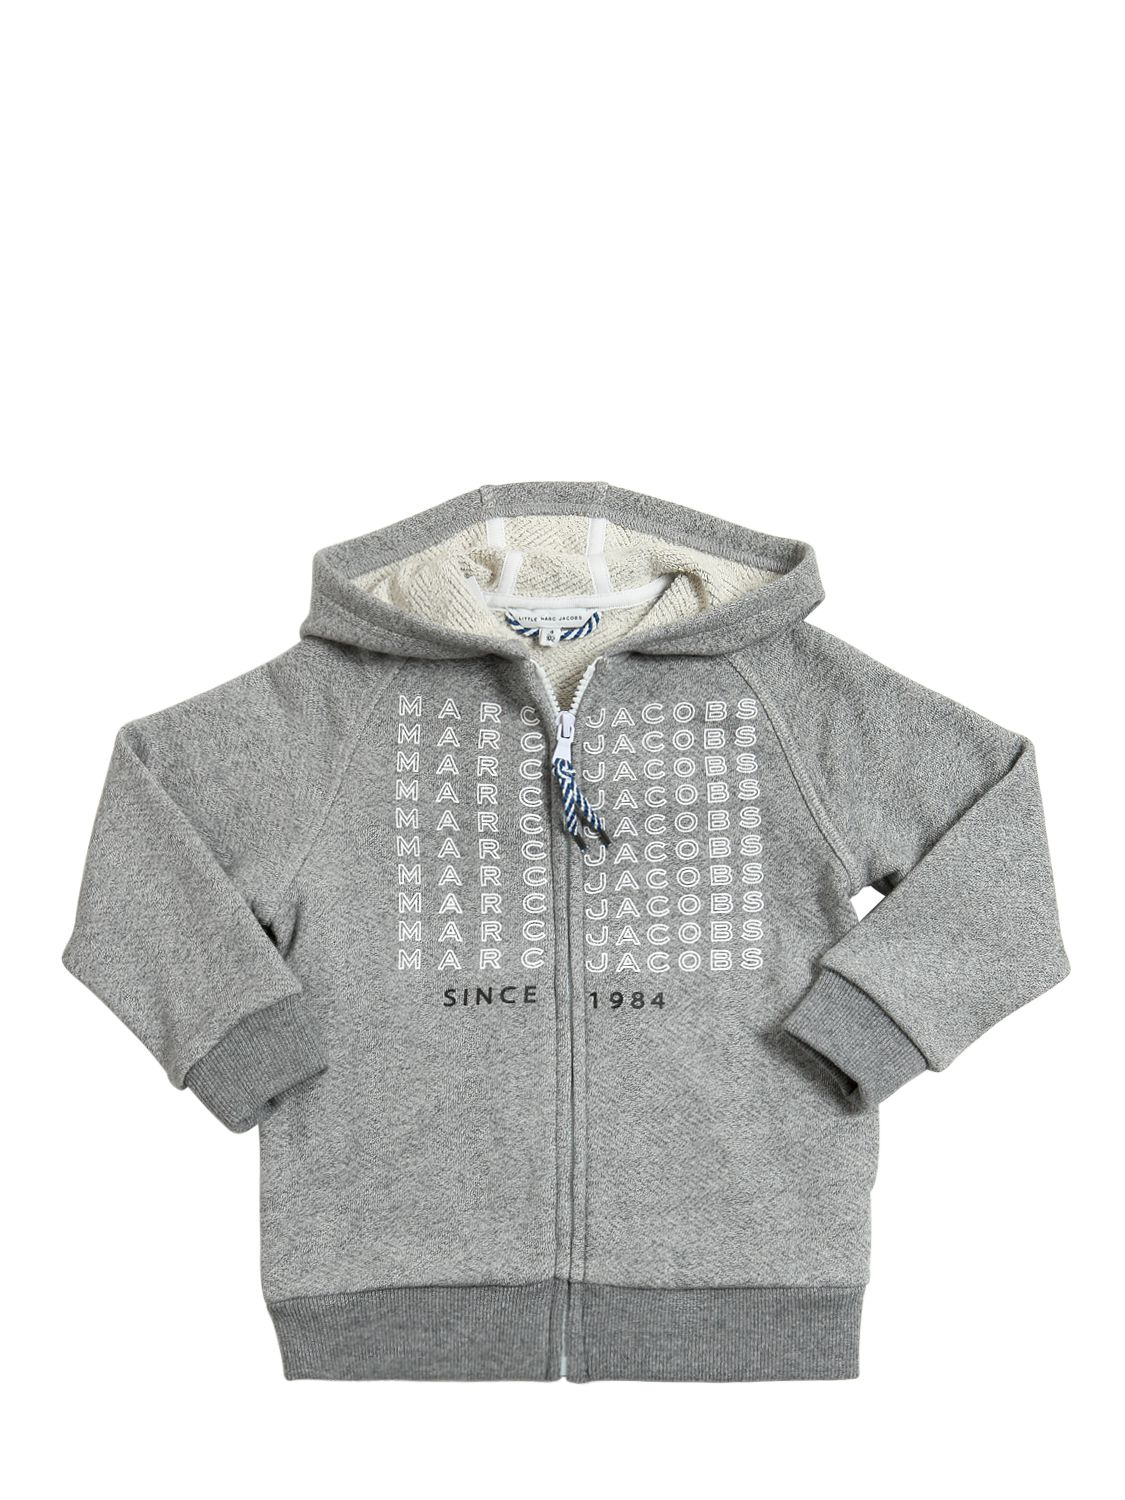 ... JACOBS | HOODED PRINTED COTTON ZIP UP SWEATSHIRT | Shoppingscanner